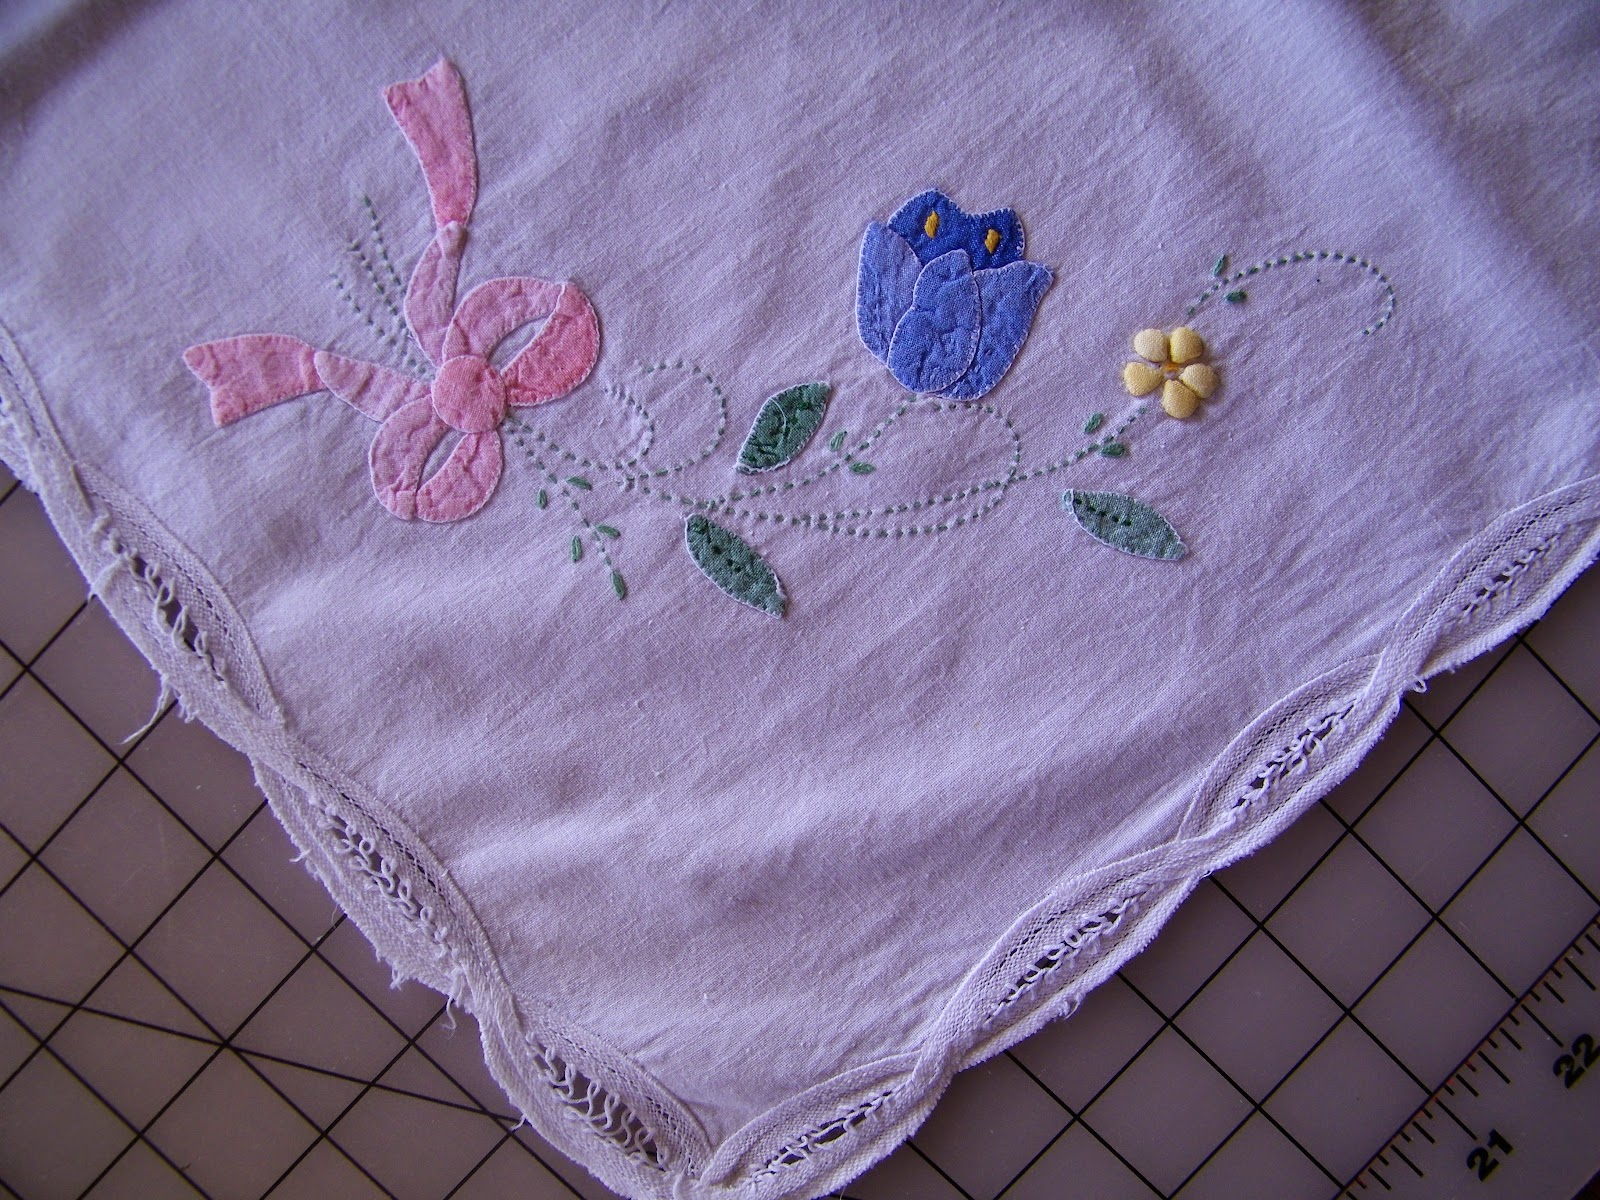 Applique designs for tablecloth - Here Is A Detail Picture On One Of The Corner Designs You Can See The Edging Lace And The Color Choices Isn T It Just Beautiful